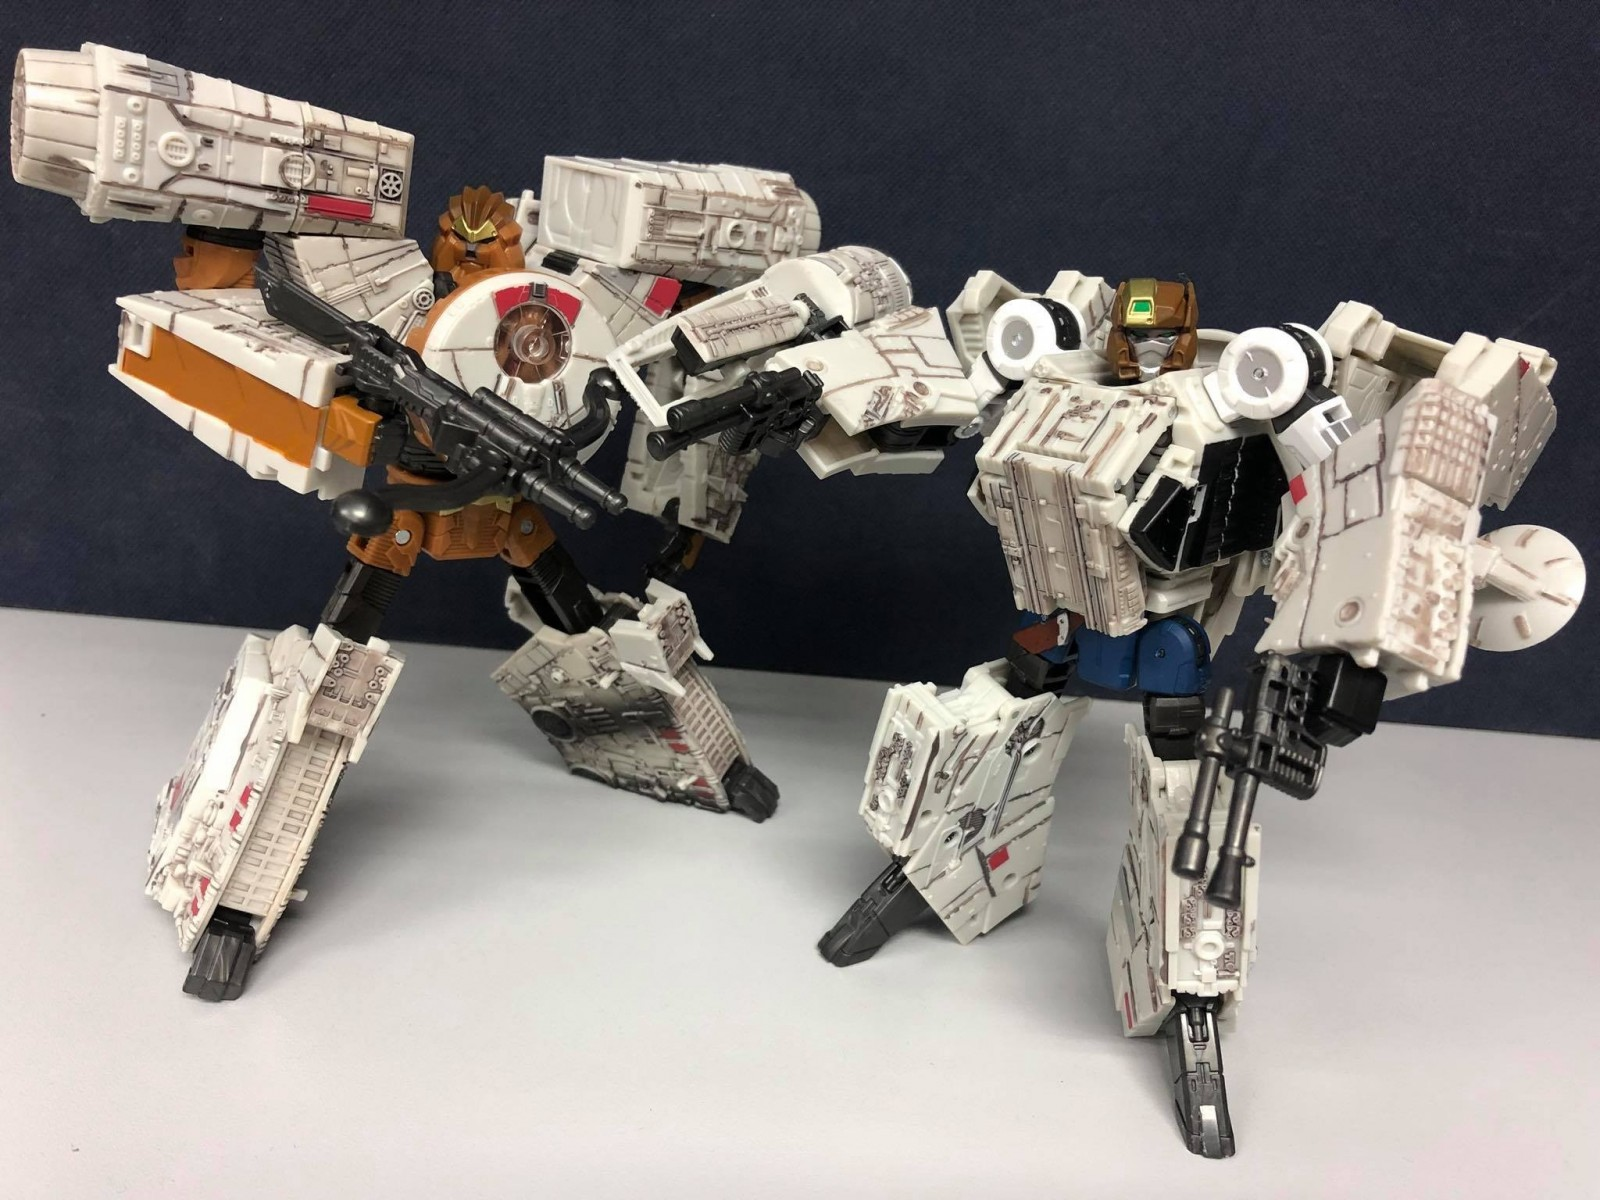 Transformers News: In-Hand Images of Takara Tomy Star Wars Powered By Transformer Millennium Falcon